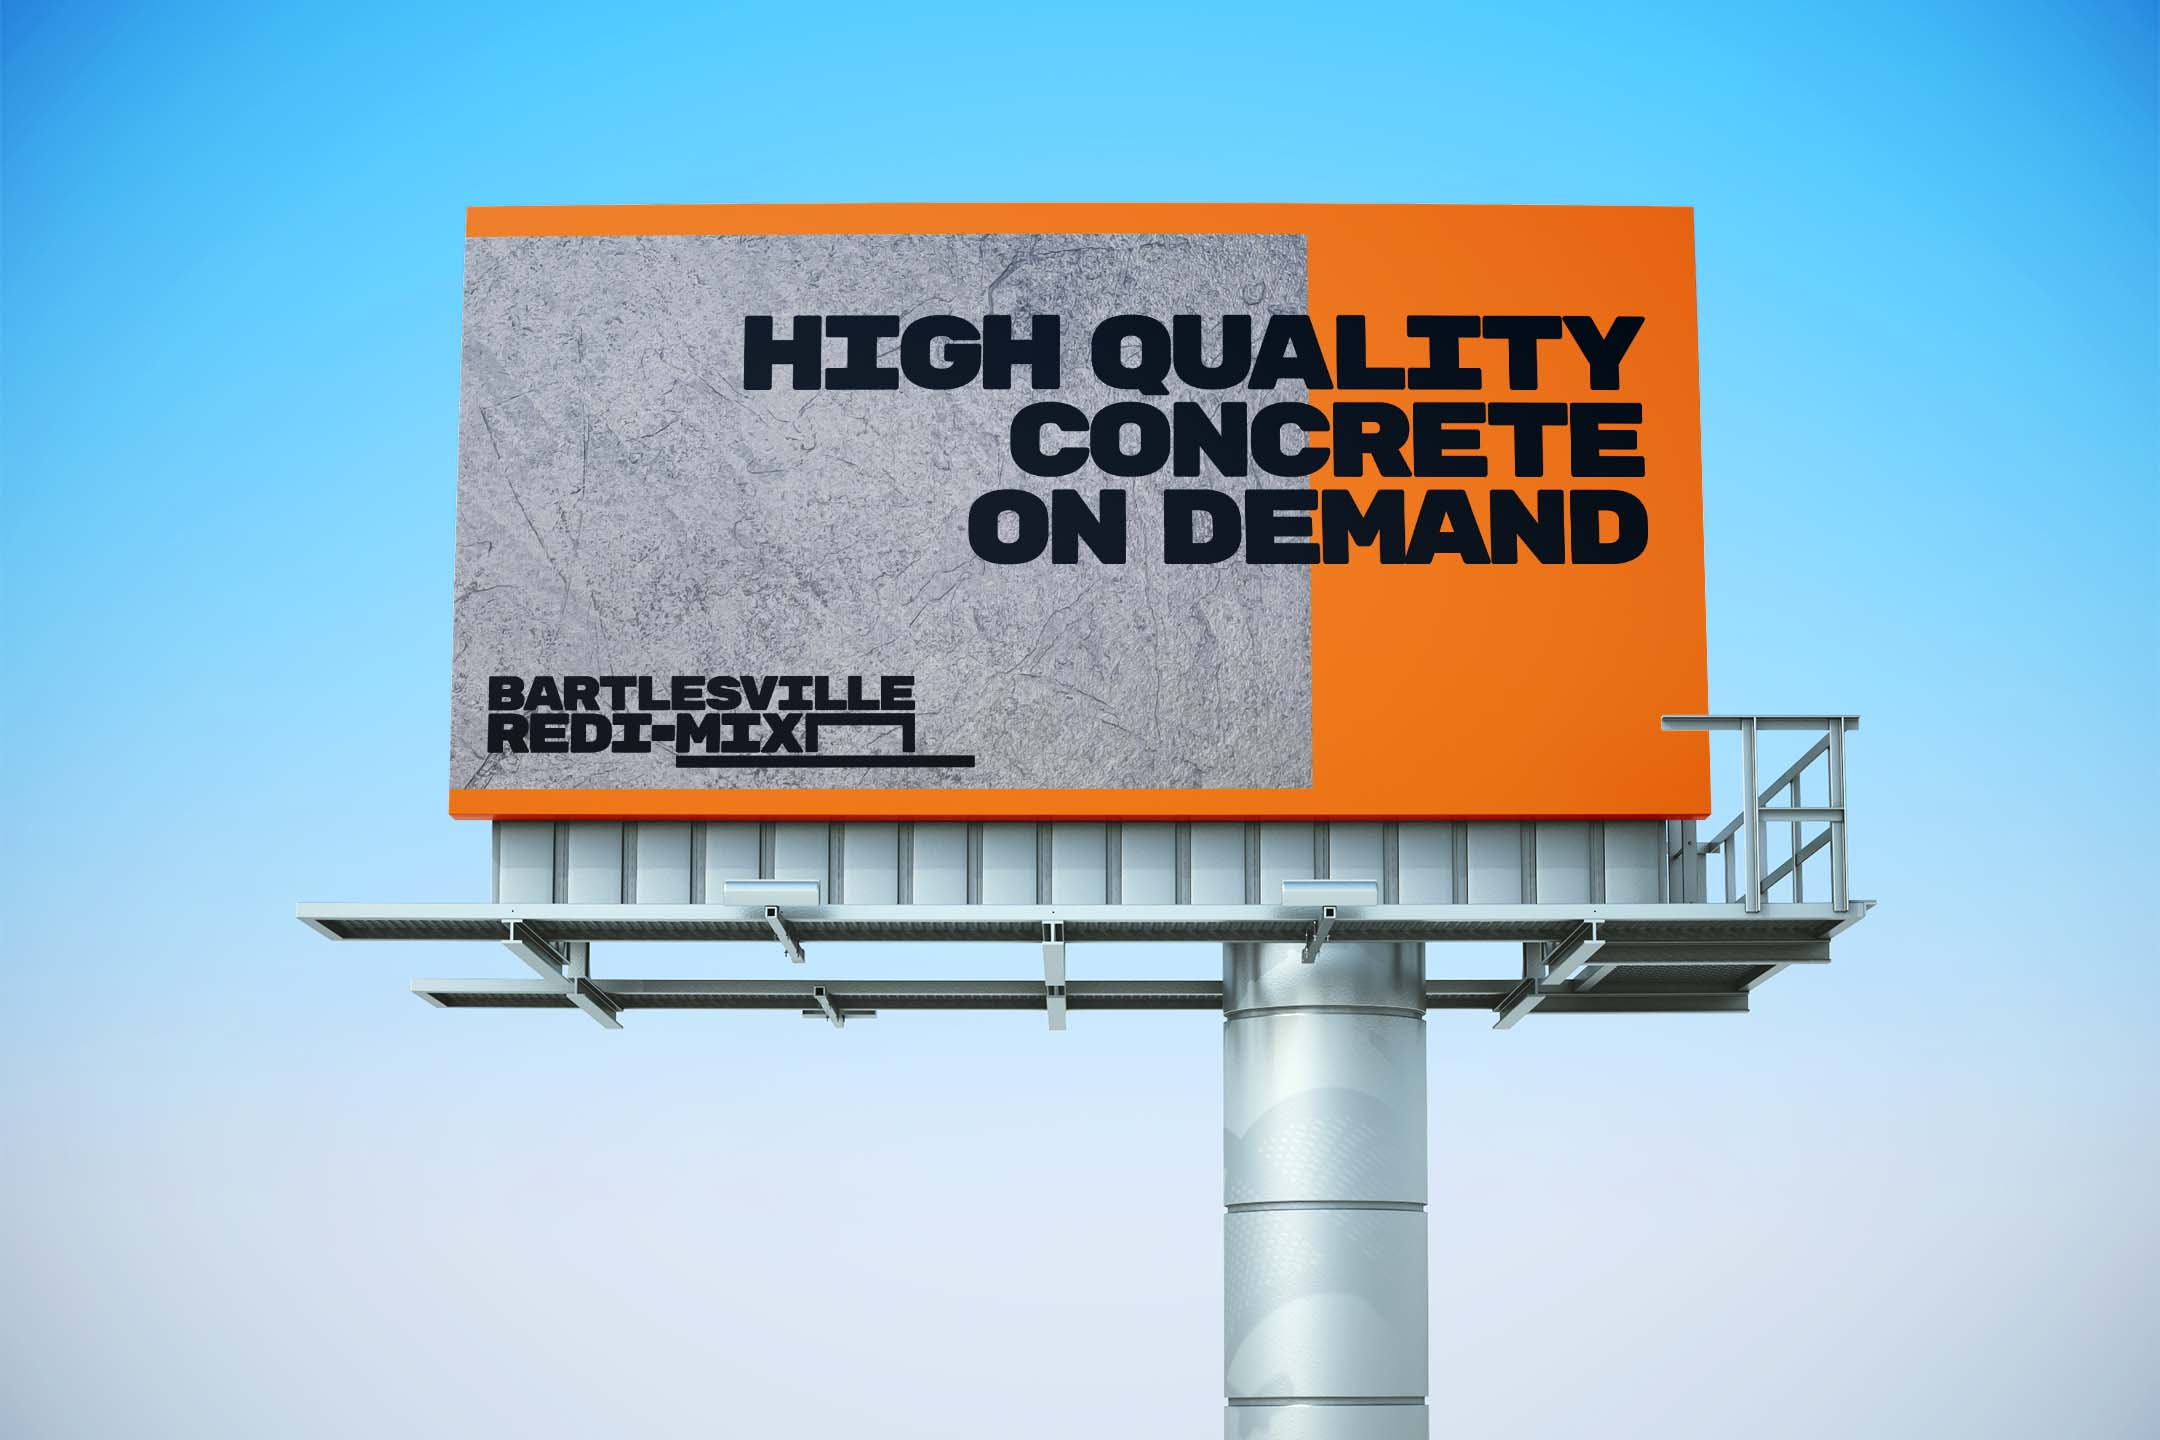 An orange billboard with a wide lockup of the Bartlesville Redi-Mix logo concept